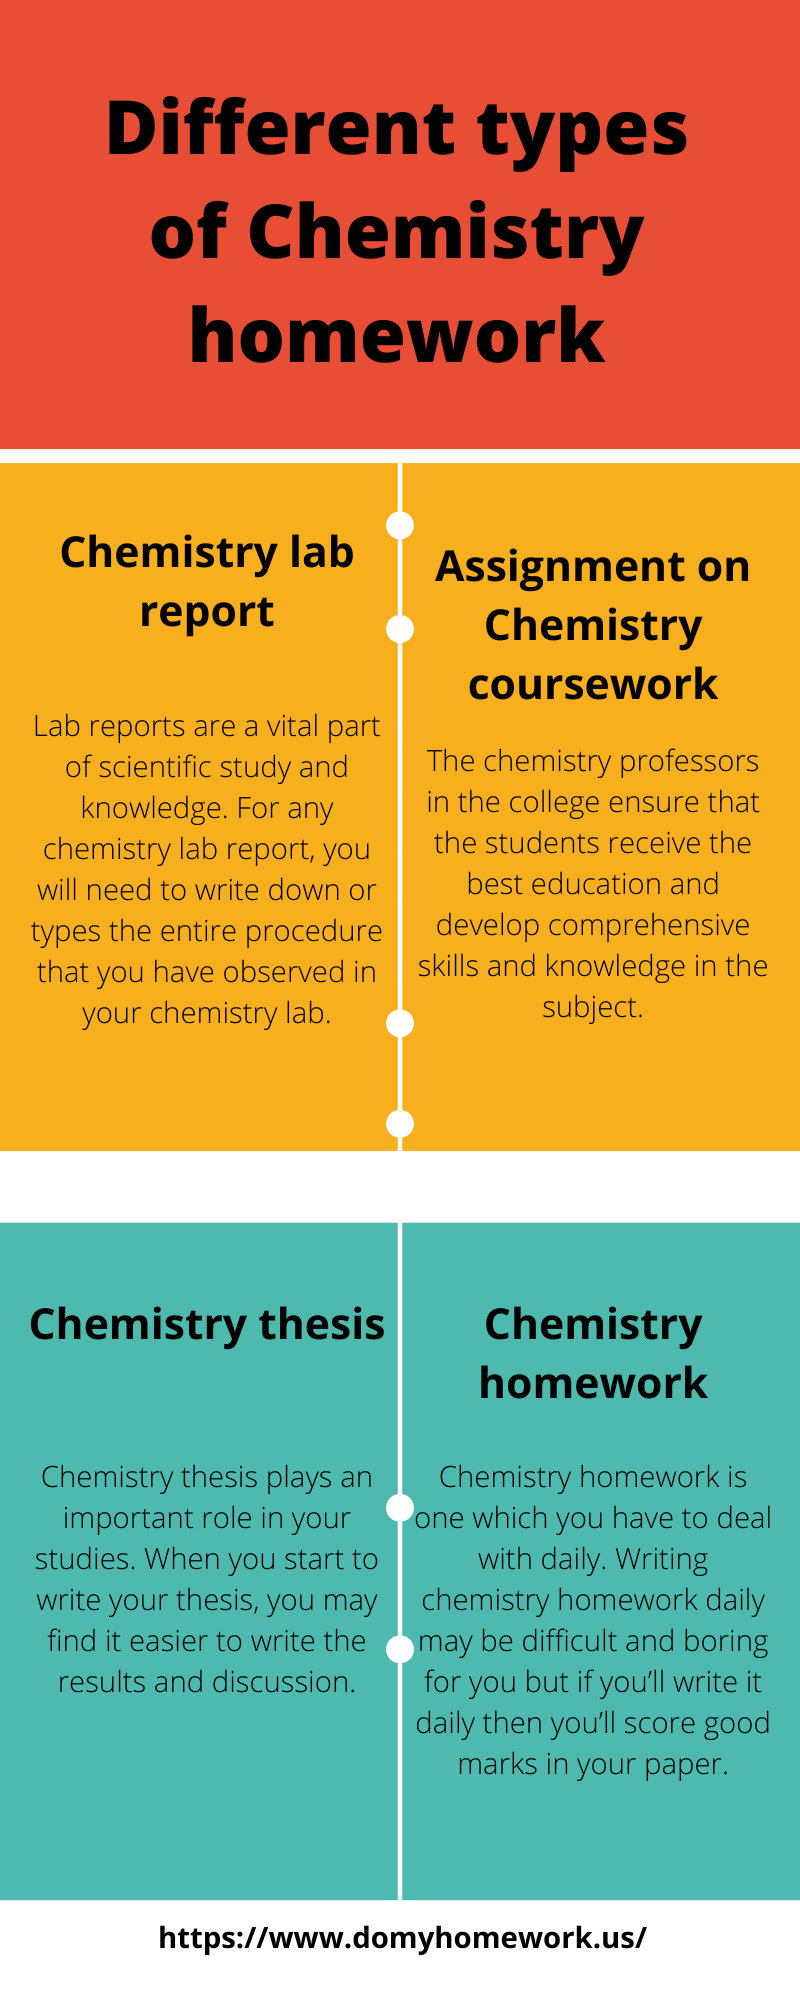 chemistry-homework-you-need-to-do-in-college